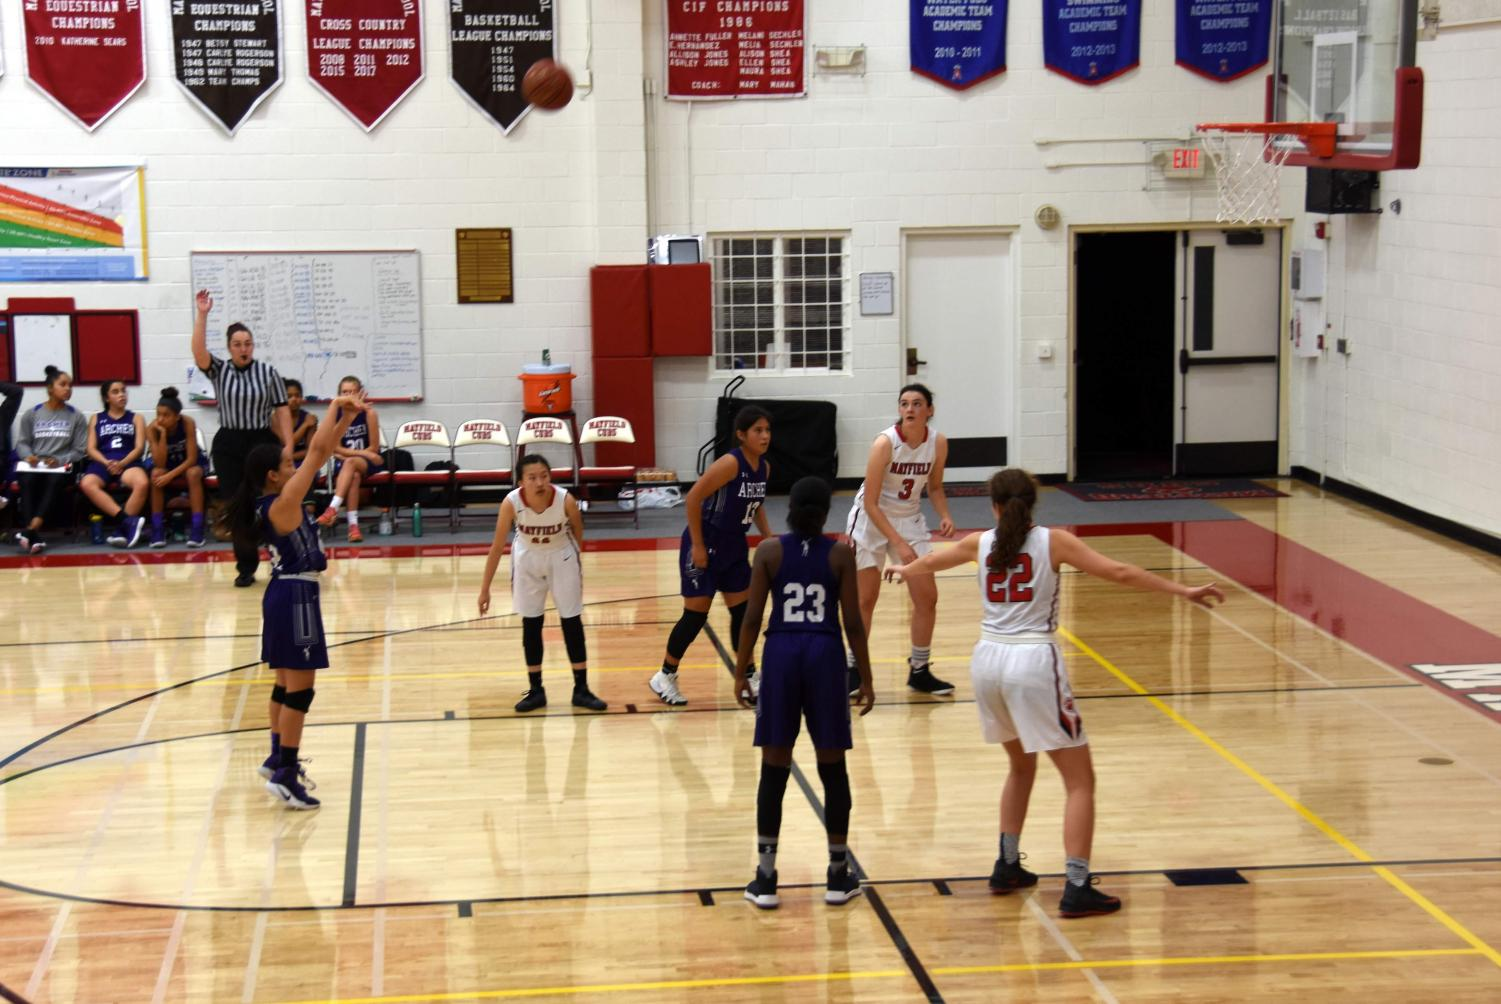 Team captain Caitlin Chen '19 shoots the ball from the free throw line. The team won seven games throughout the season.